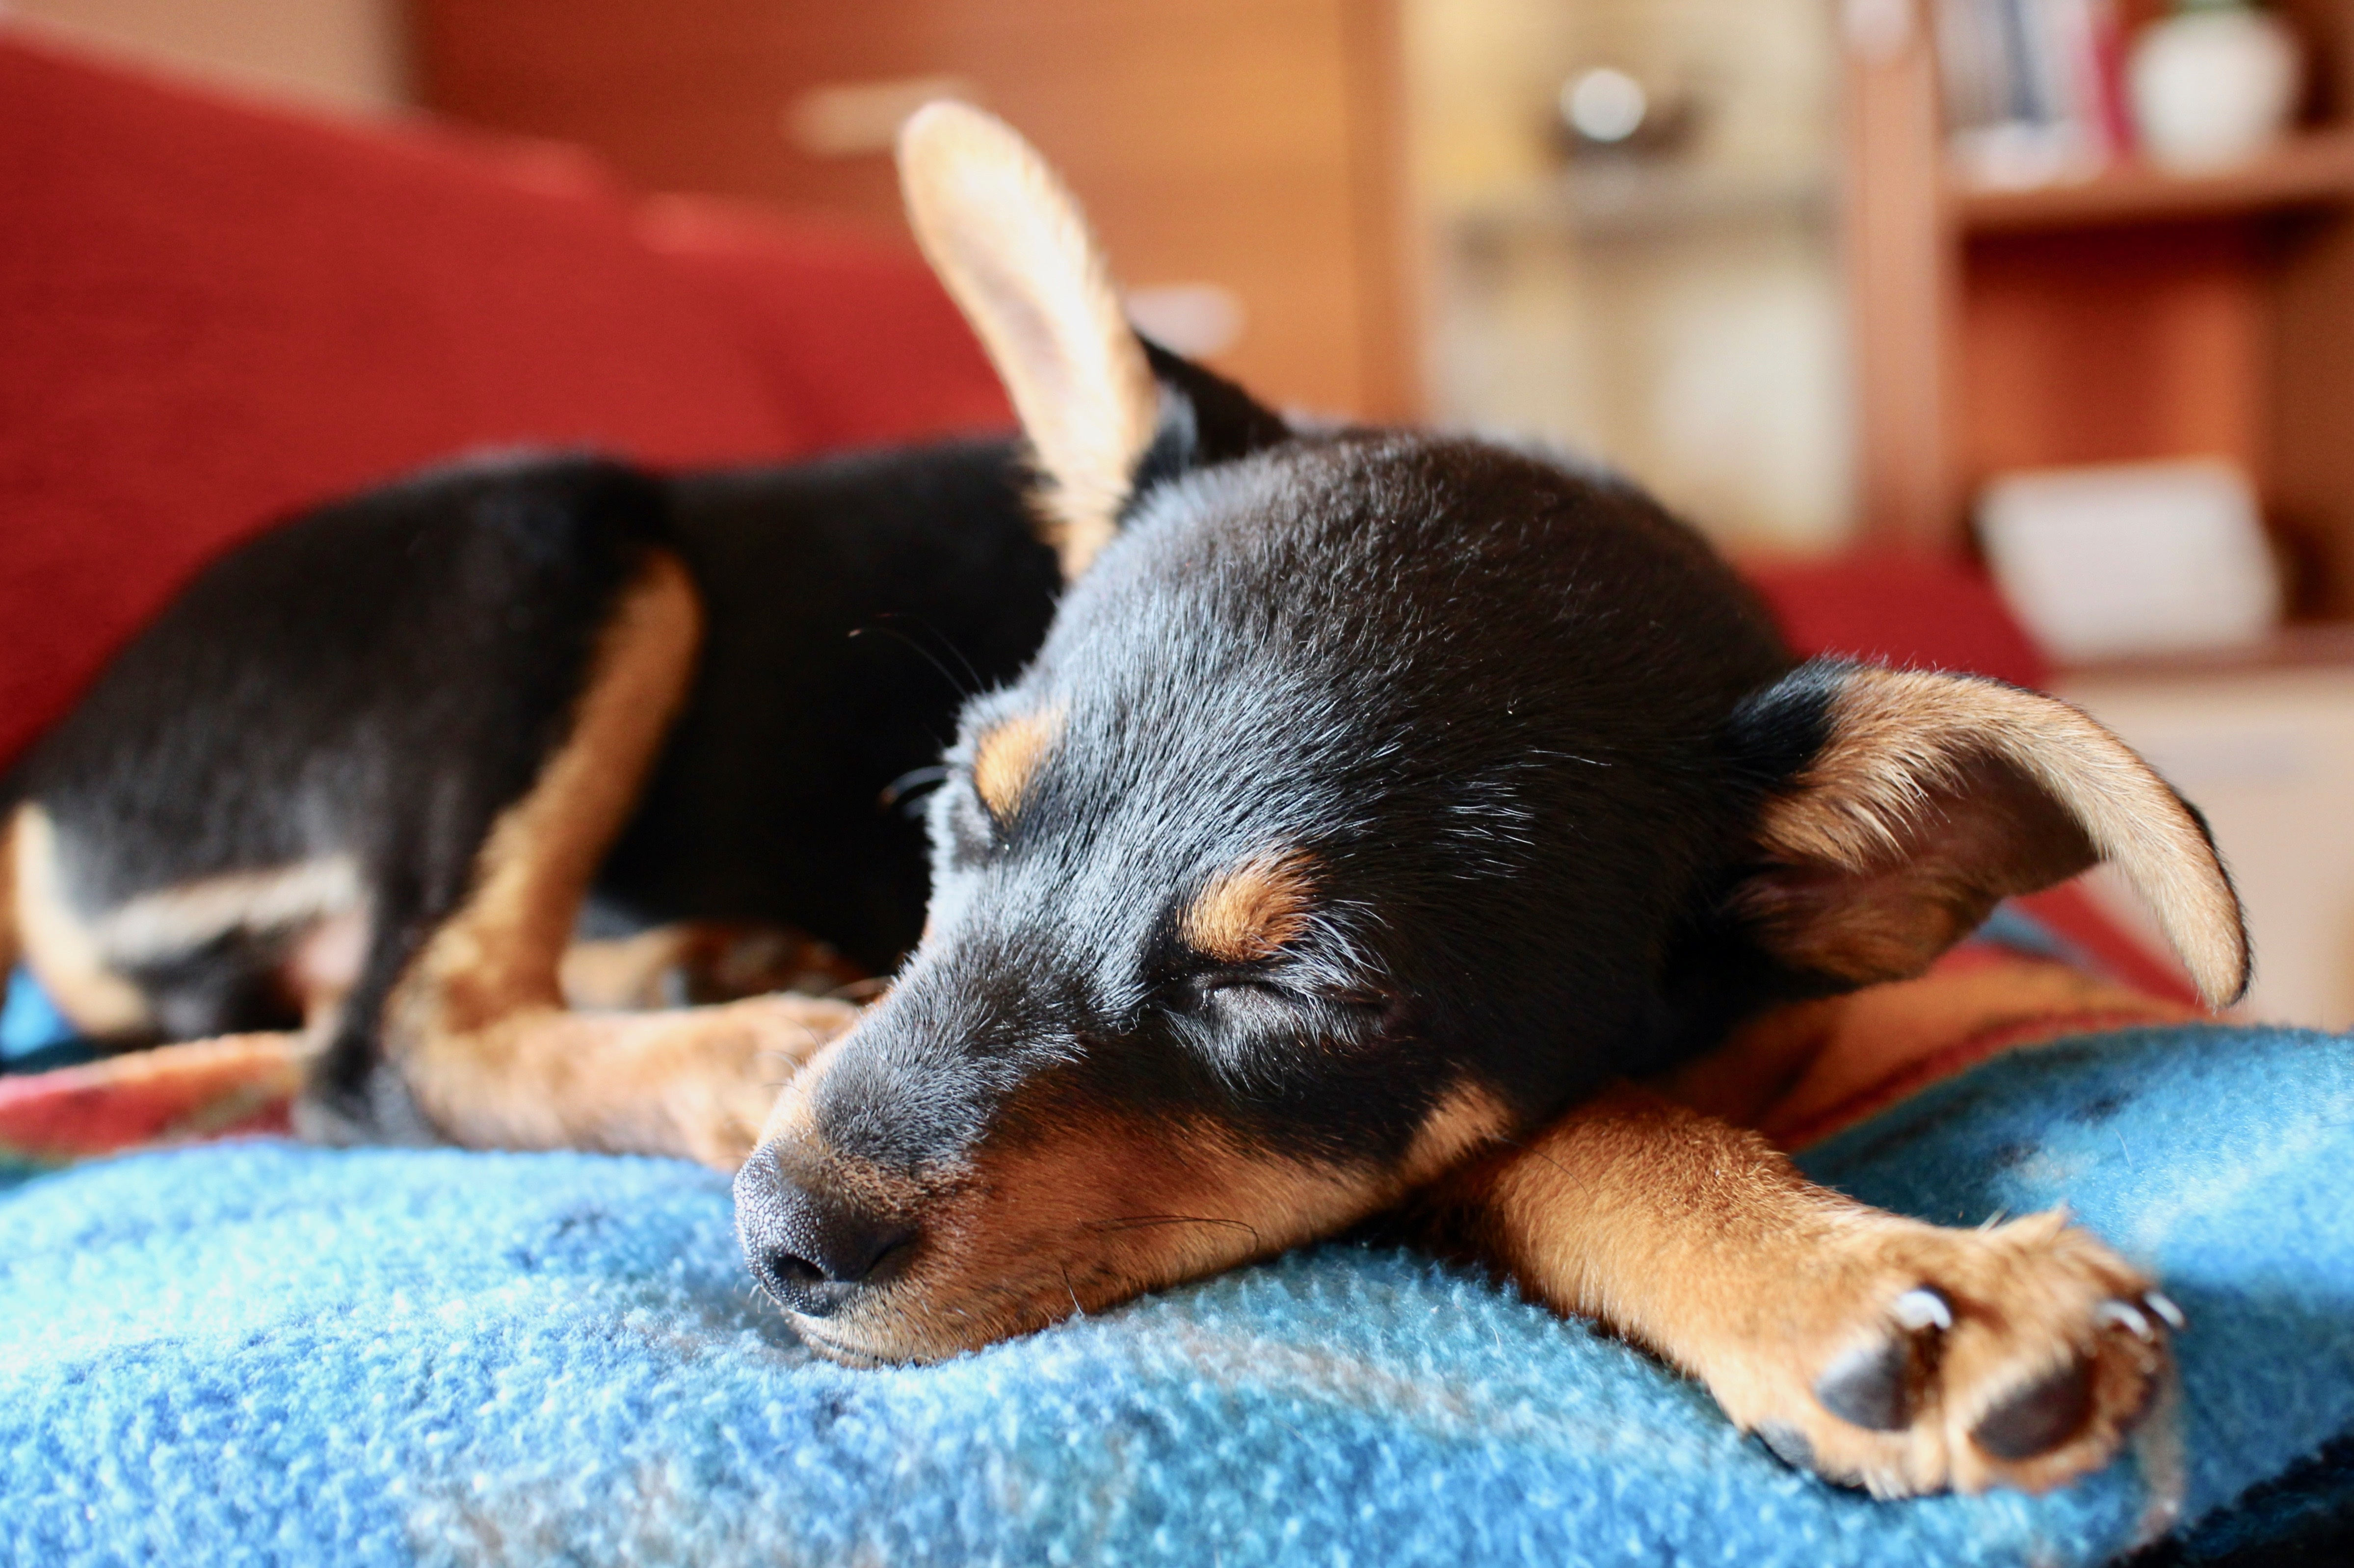 Black and tan mixed breed dog taking a nap on a blue blanket in a house.